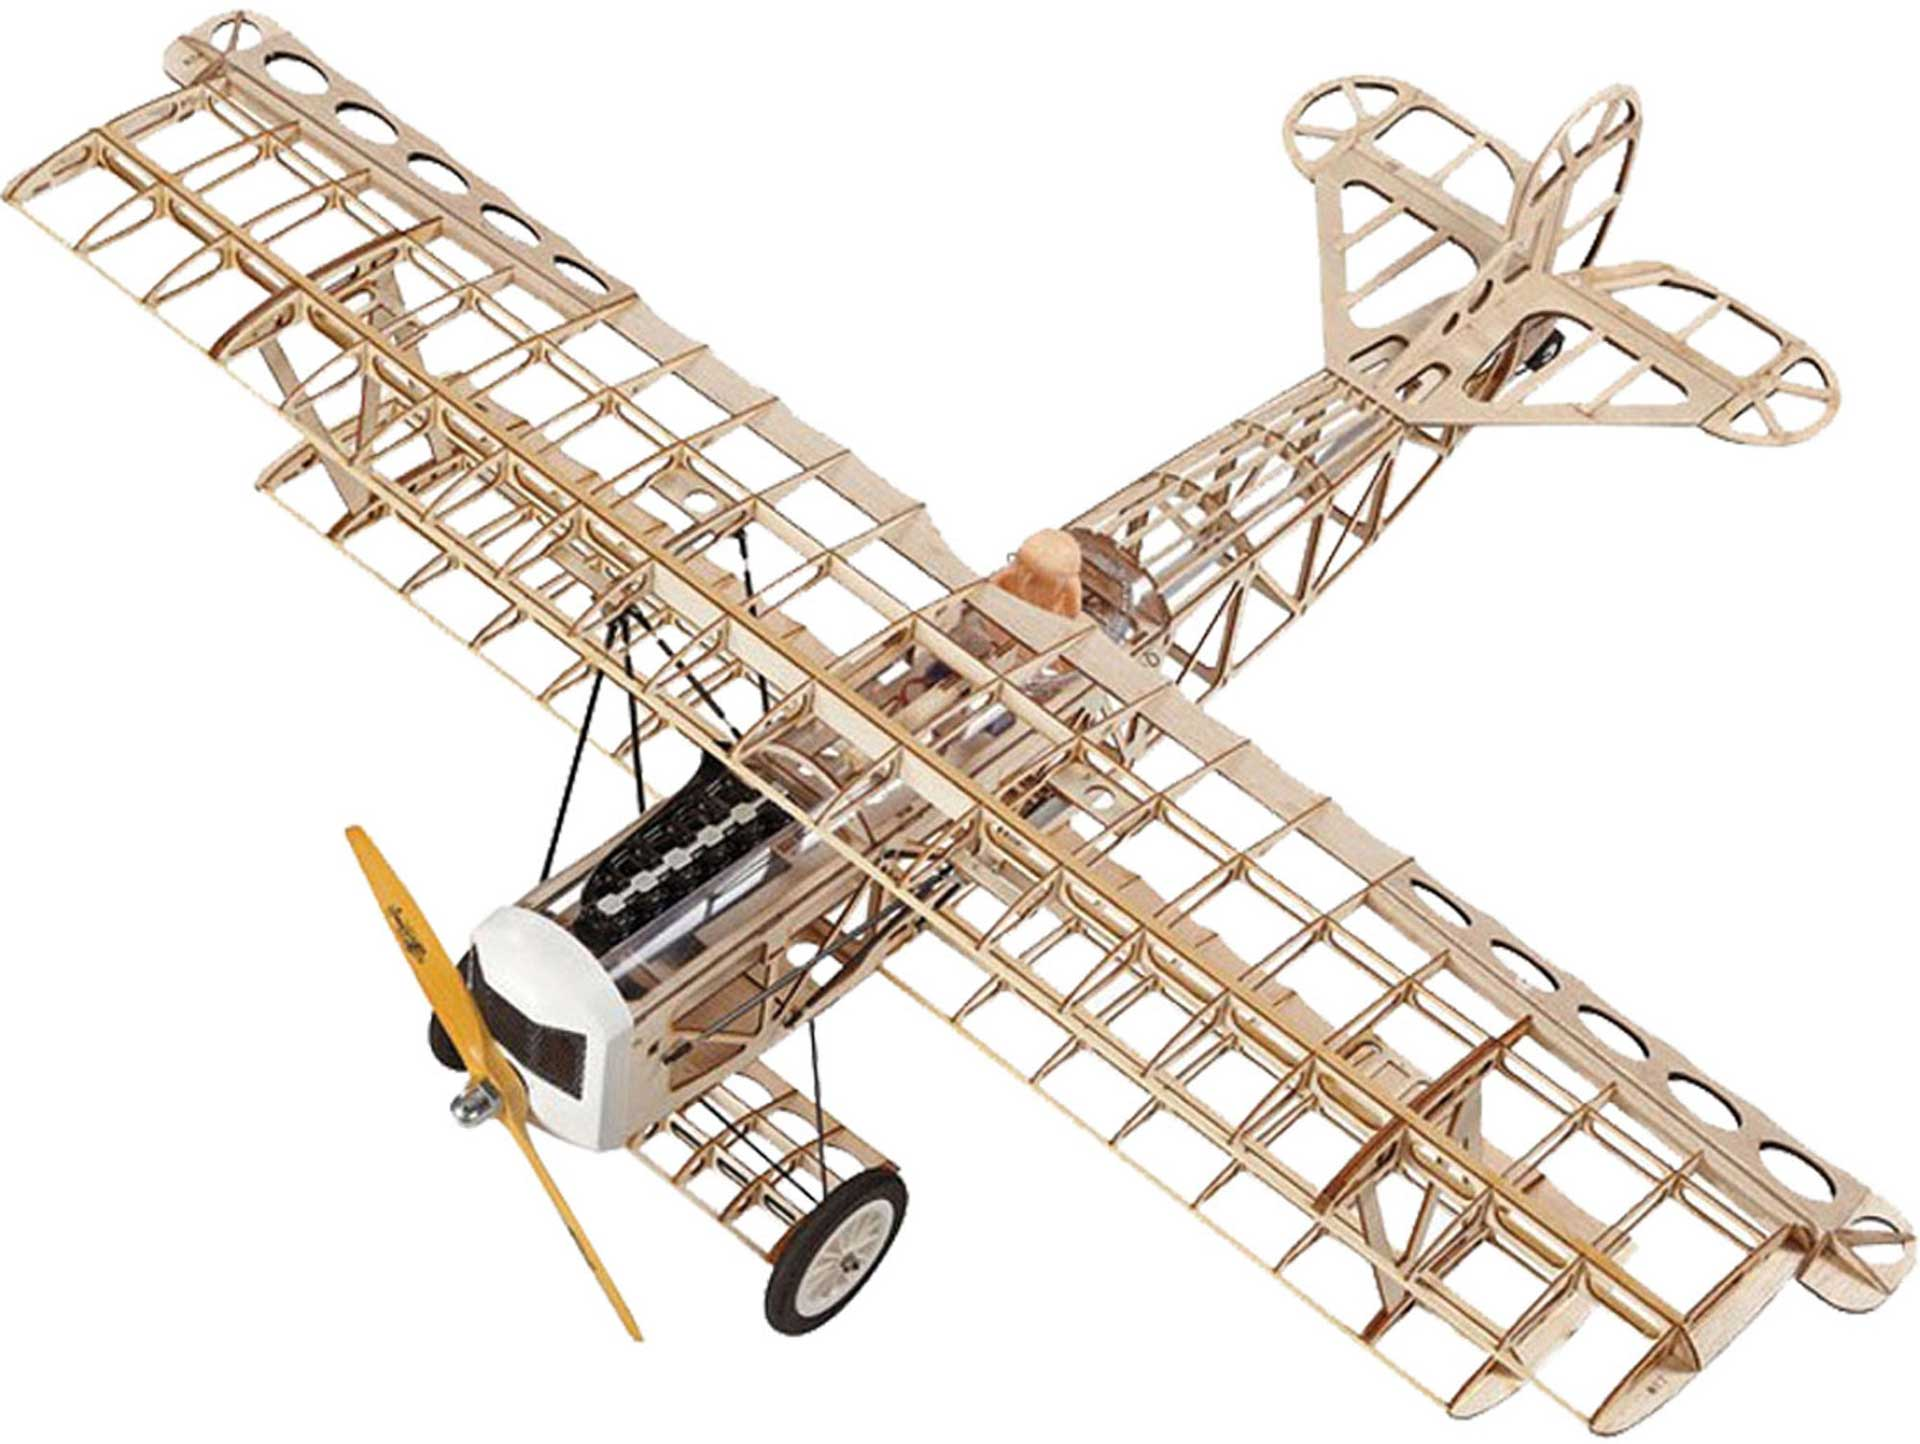 SUPER FLYING MODEL FOKKER DVII EP KIT BIPLANE